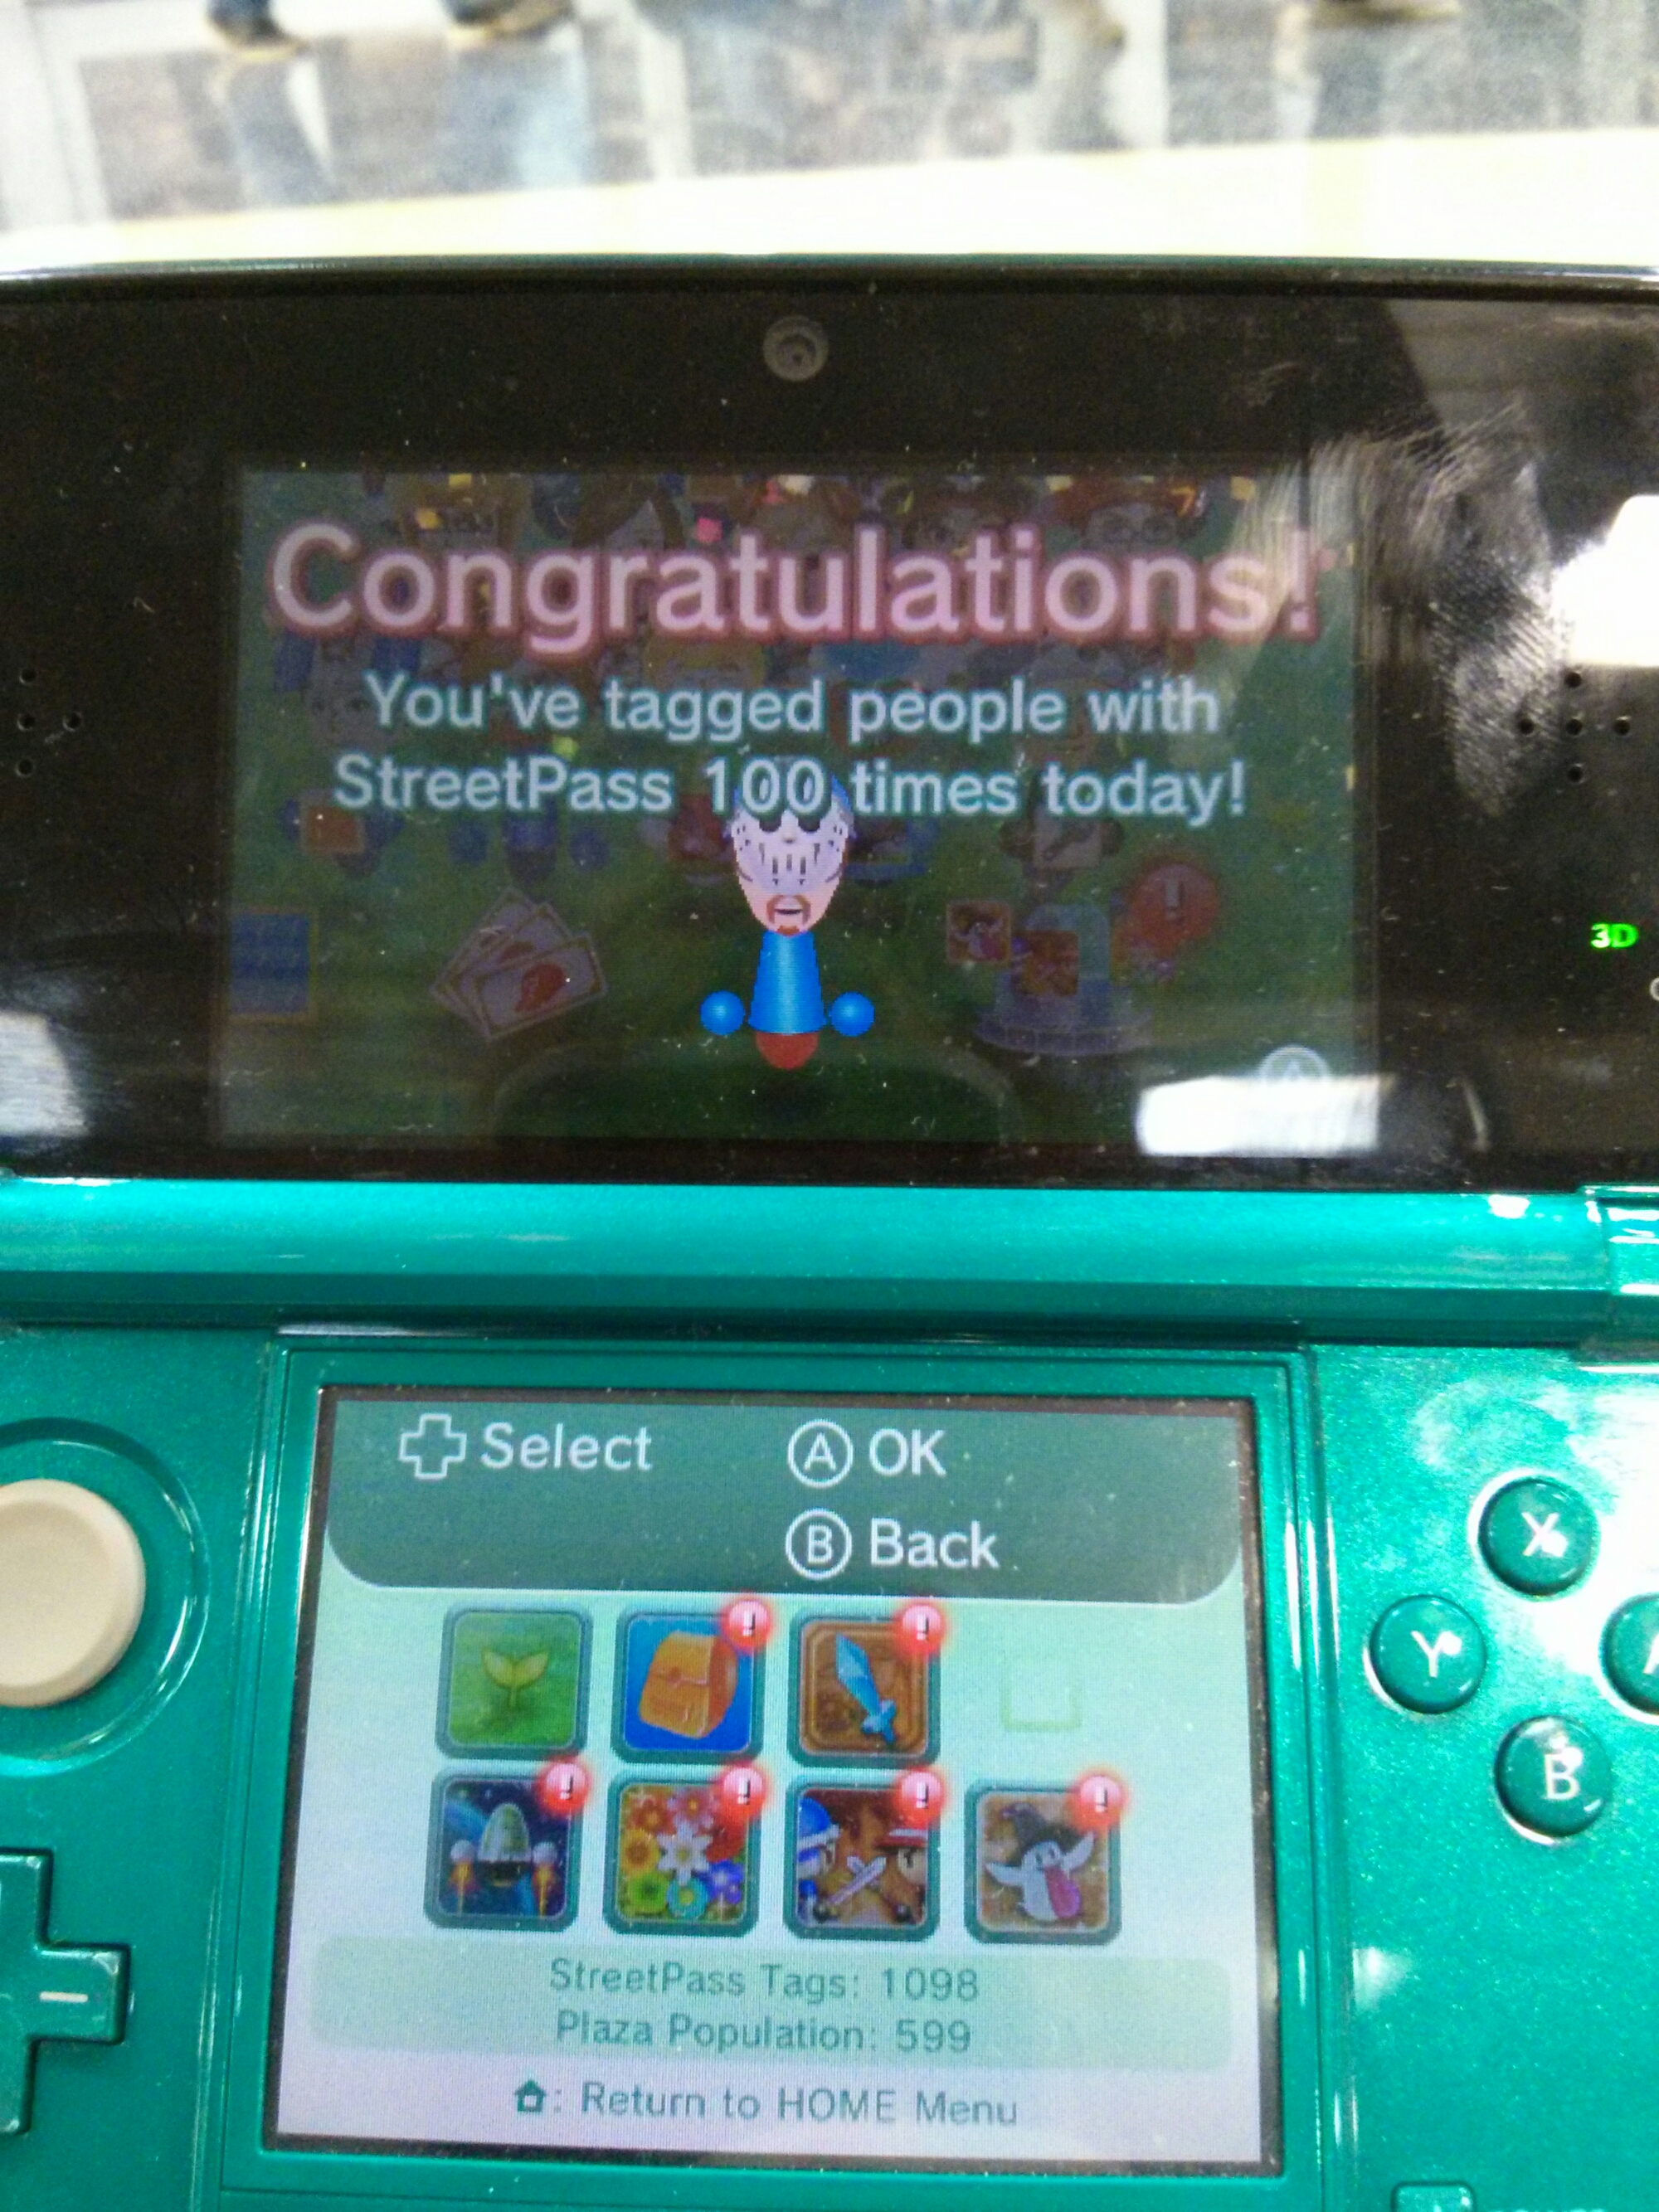 image of 100 StreetPass tags in one day accomplishment